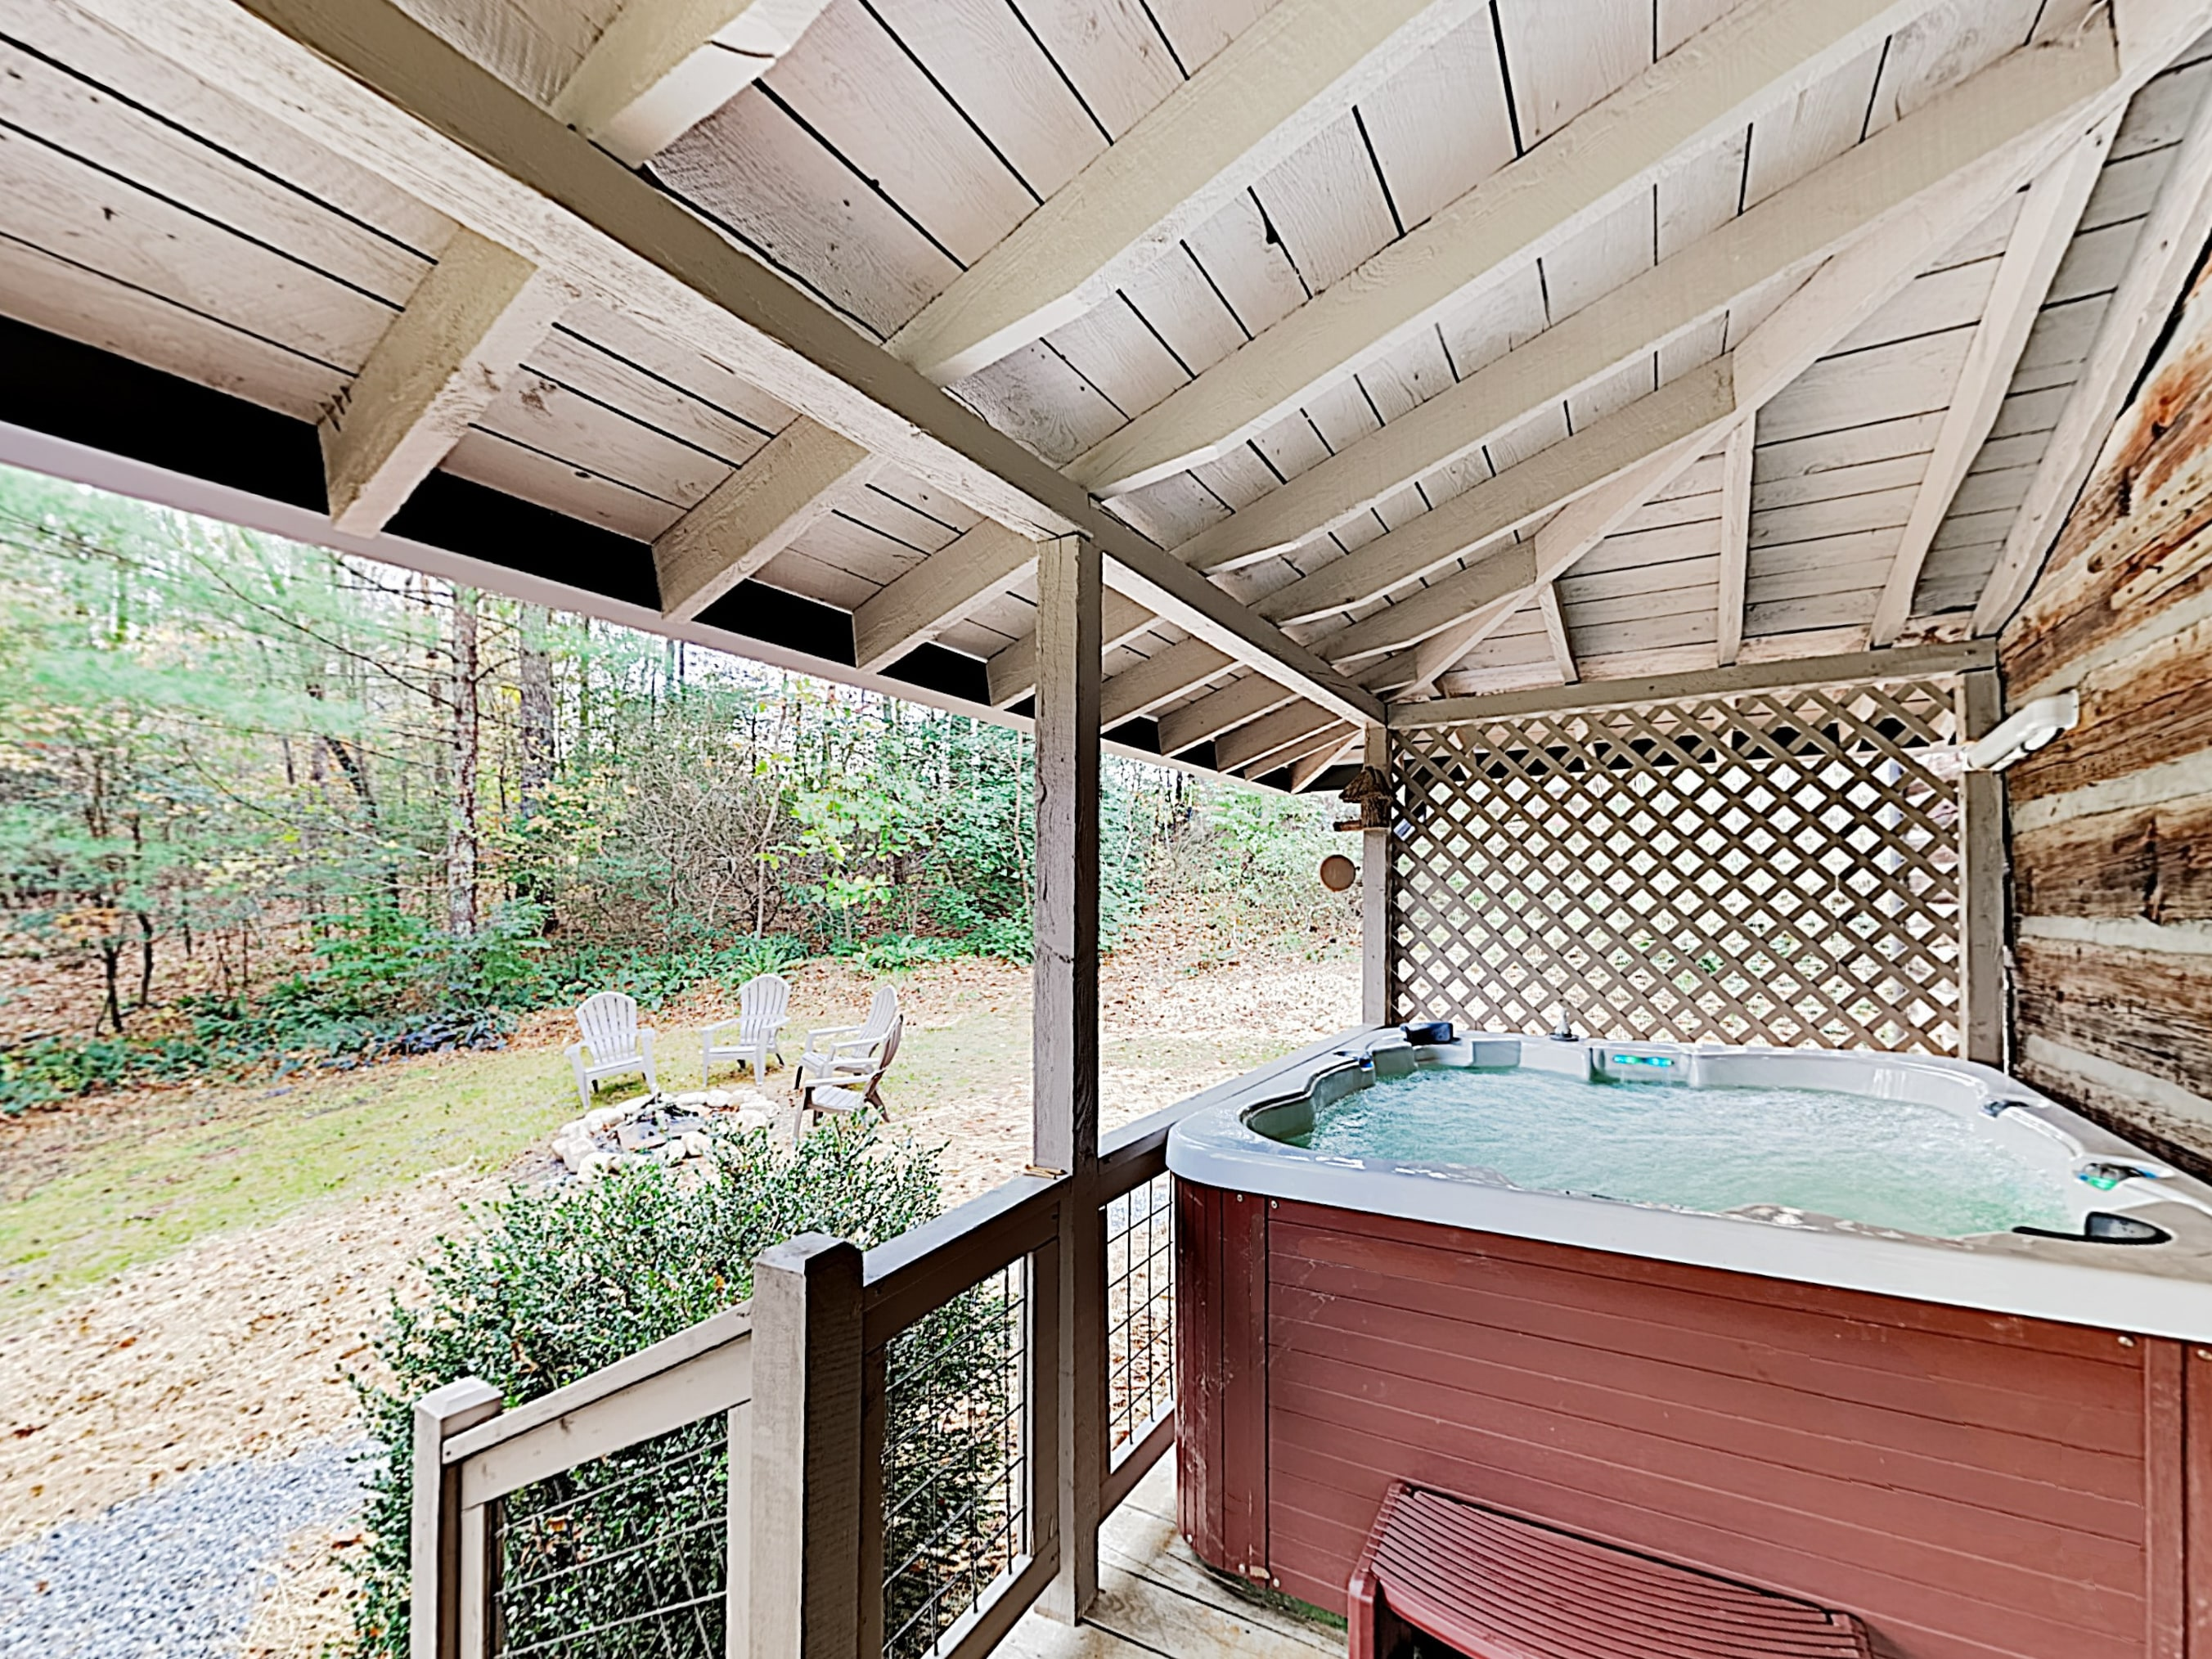 Soak in the private hot tub on the covered deck.